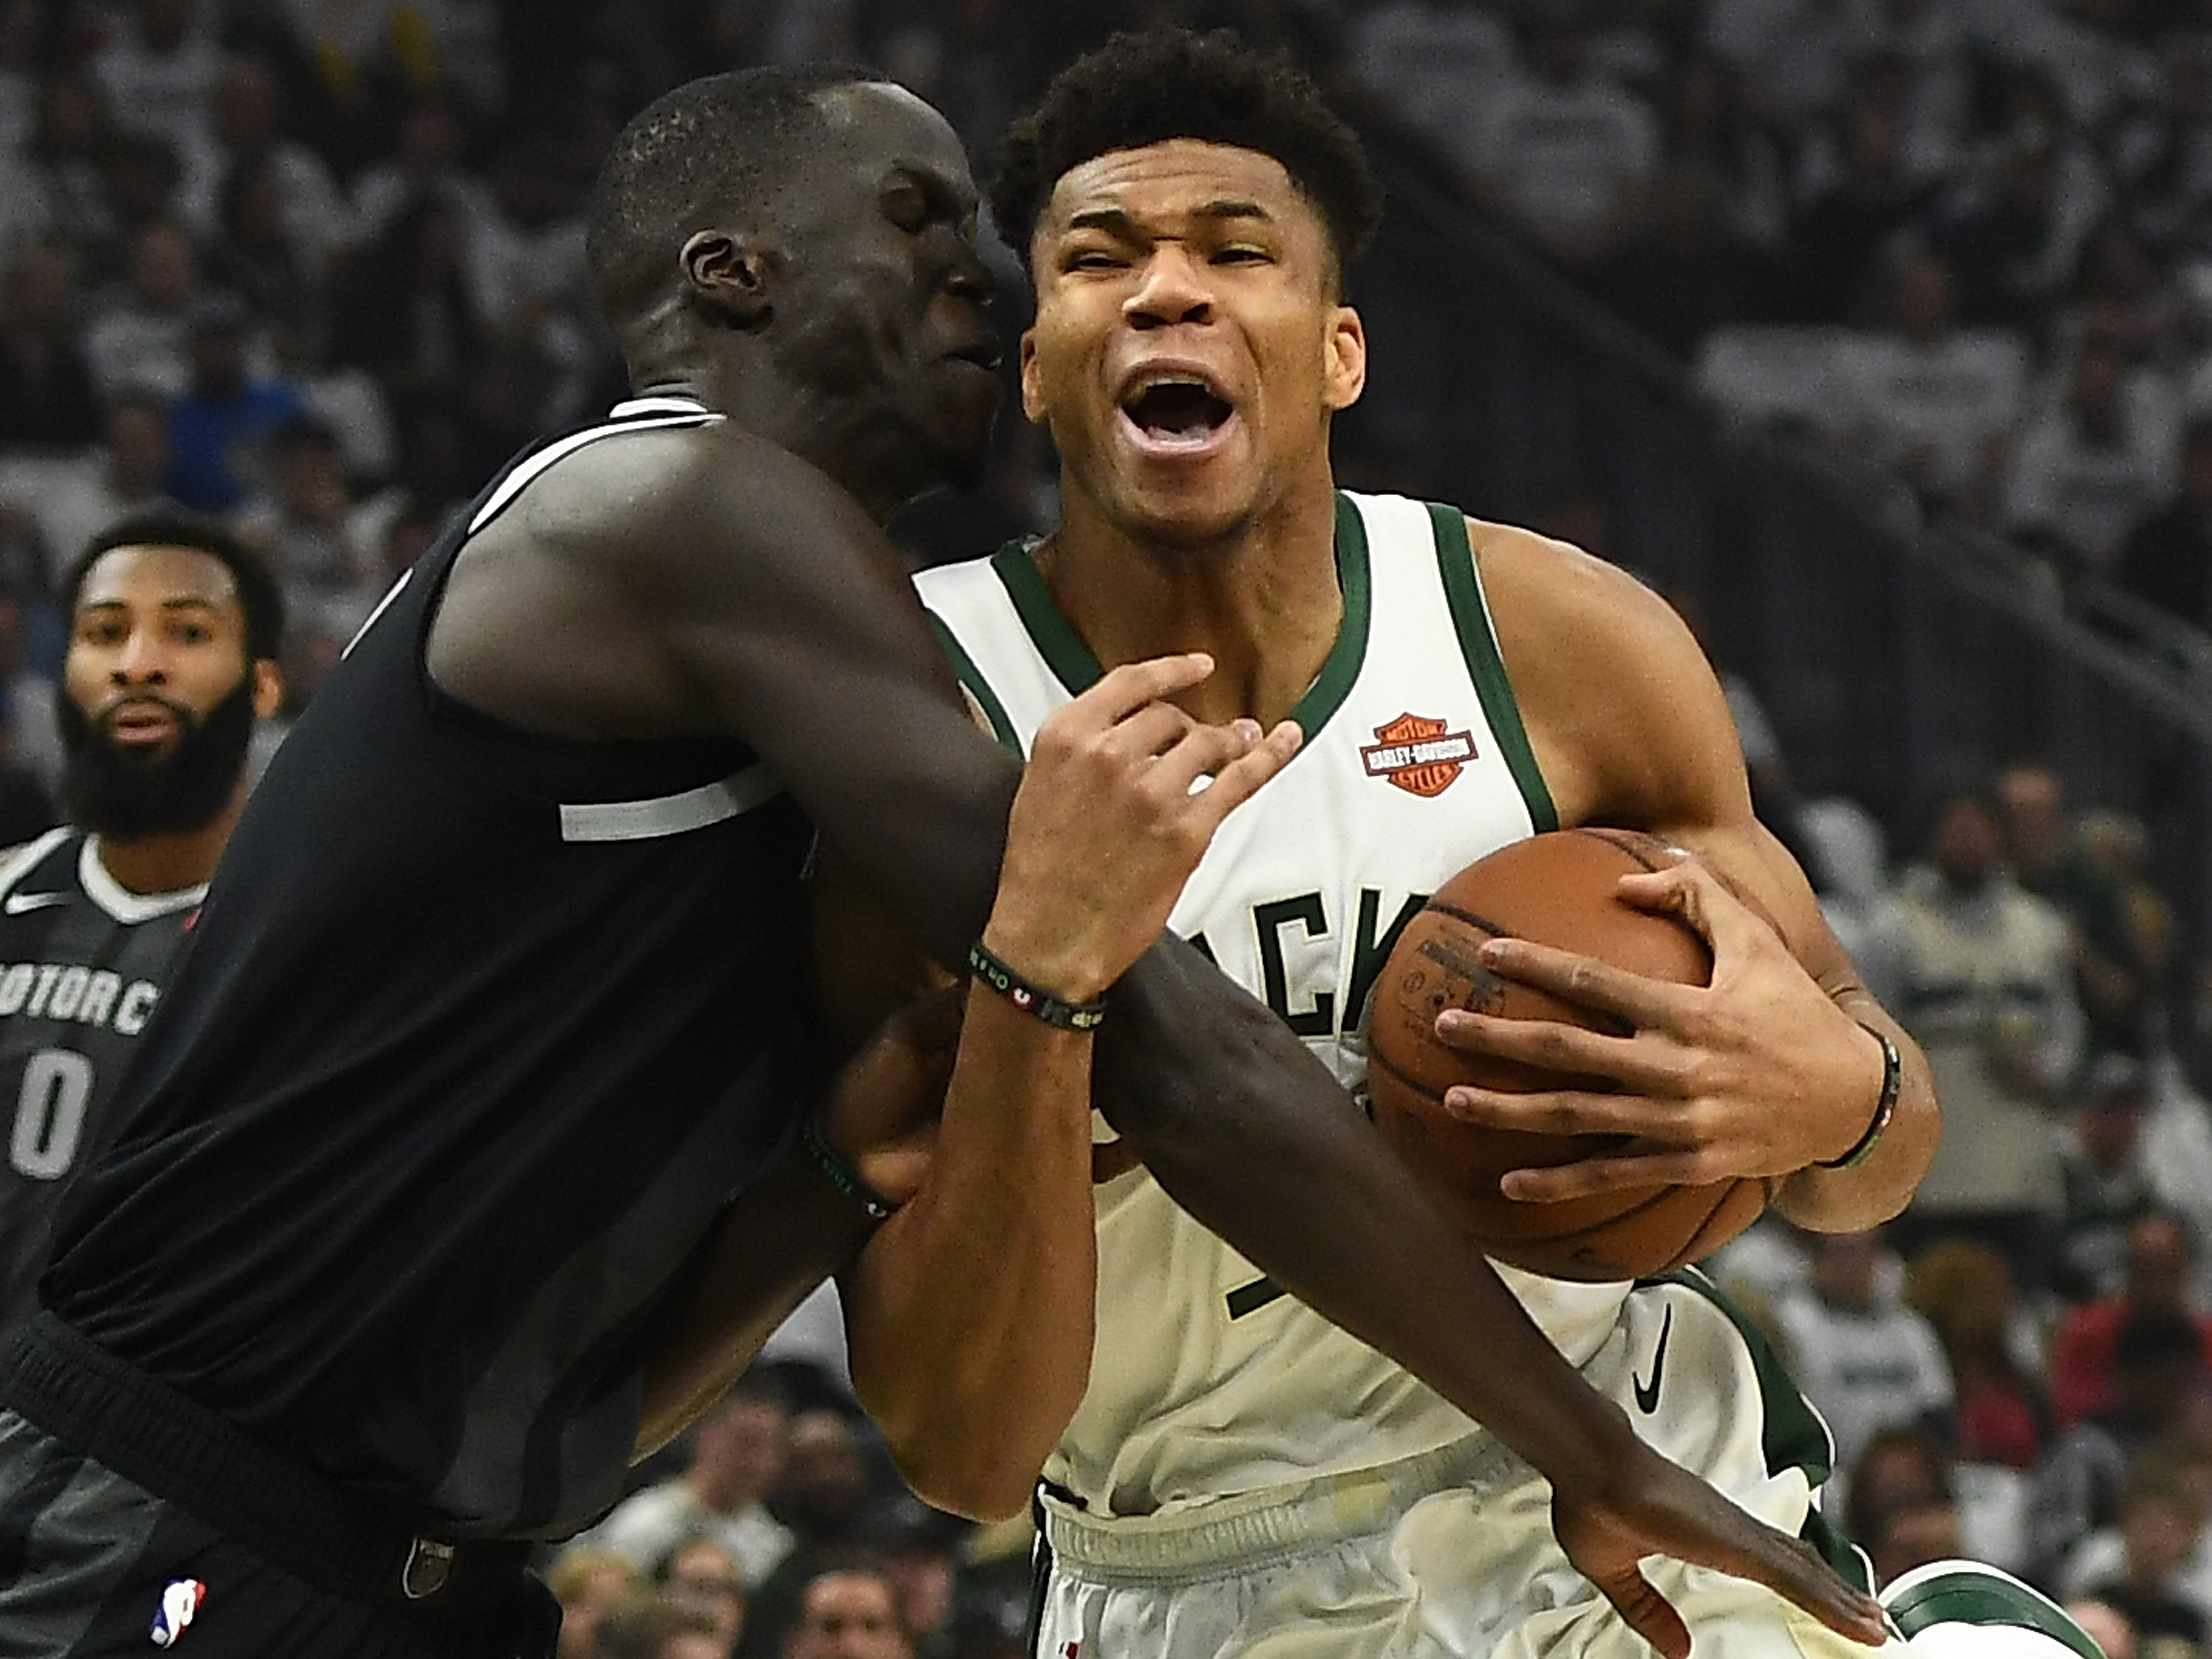 Giannis Antetokounmpo of the Milwaukee Bucks is fouled by Thon Maker of the Detroit Pistons during Game 1 at Fiserv Forum on April 14, 2019 in Milwaukee.